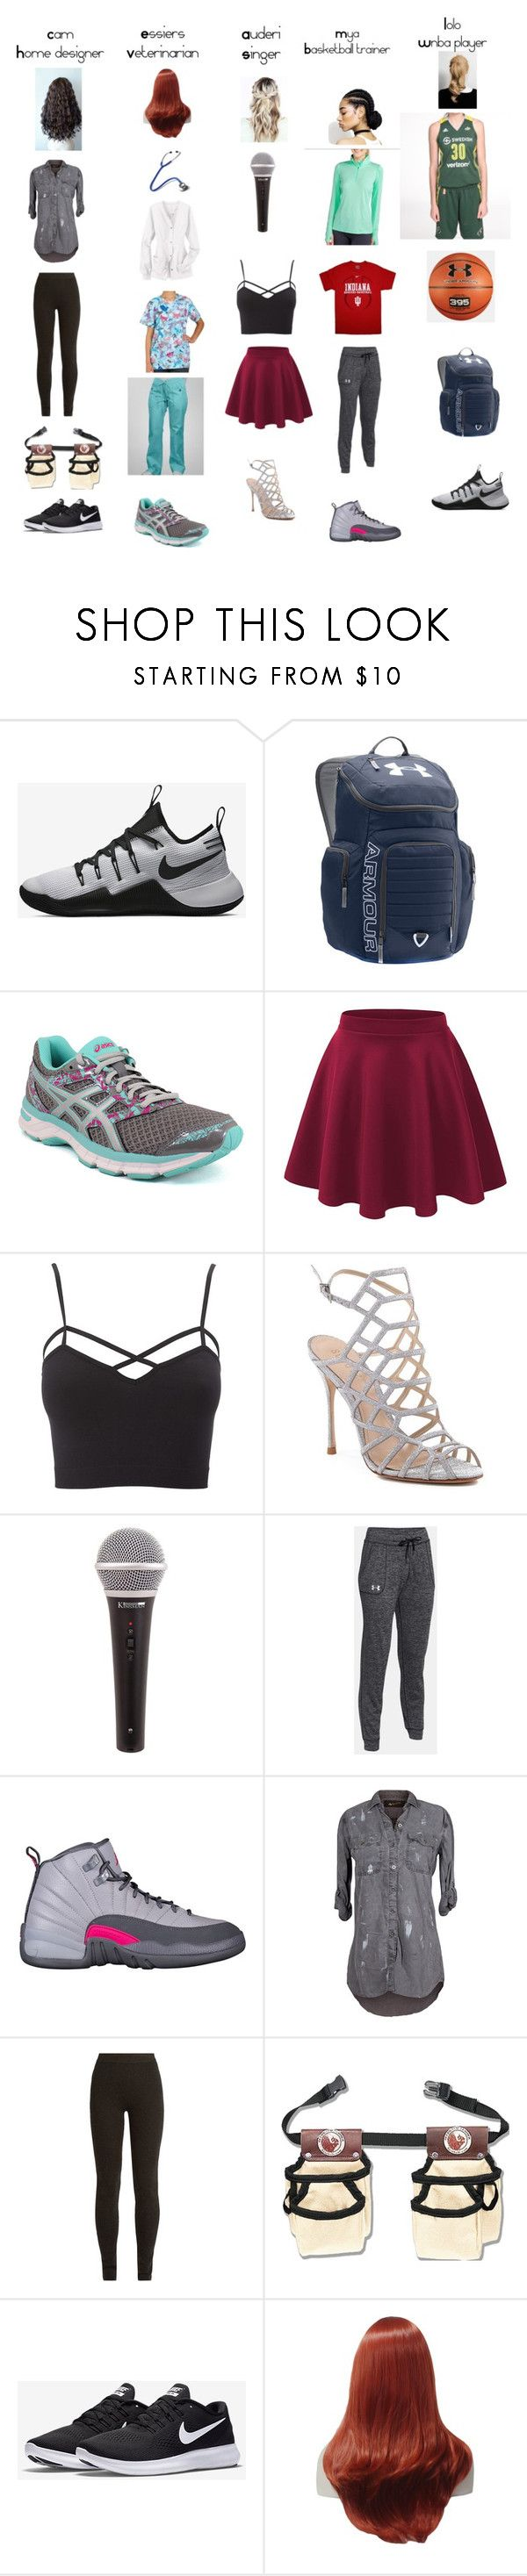 """""""BFF// future career👩🏼🎓"""" by narwale-13 ❤ liked on Polyvore featuring NIKE, Under Armour, Asics, Charlotte Russe, Schutz, The Nu Vintage, Ryan Roche and plus size clothing"""